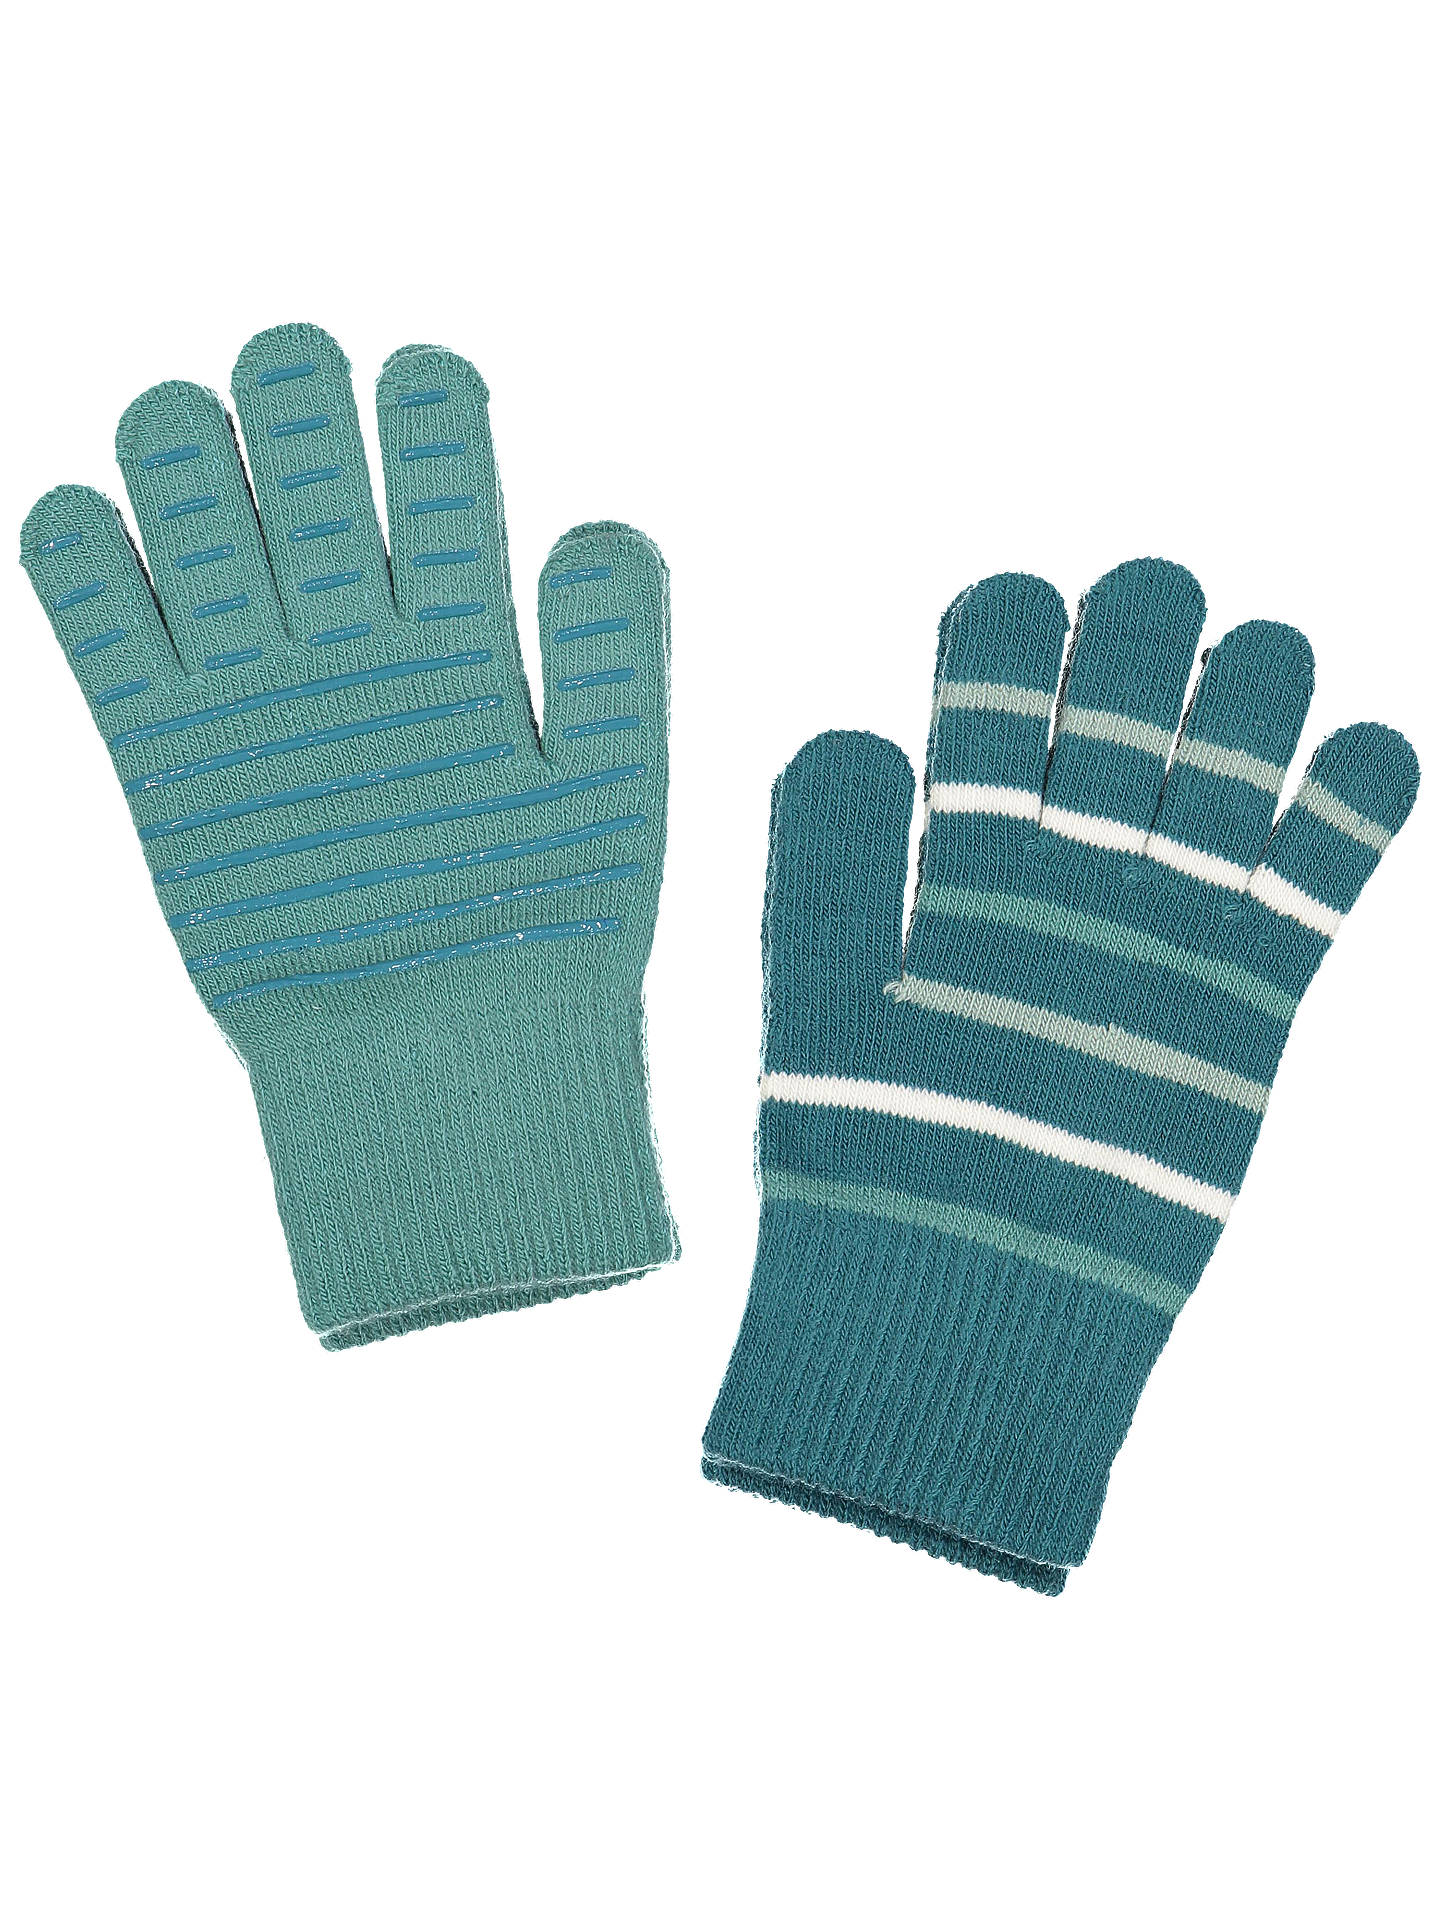 BuyPolarn O. Pyret Children's Striped Gloves, Blue, 4-12 years Online at johnlewis.com